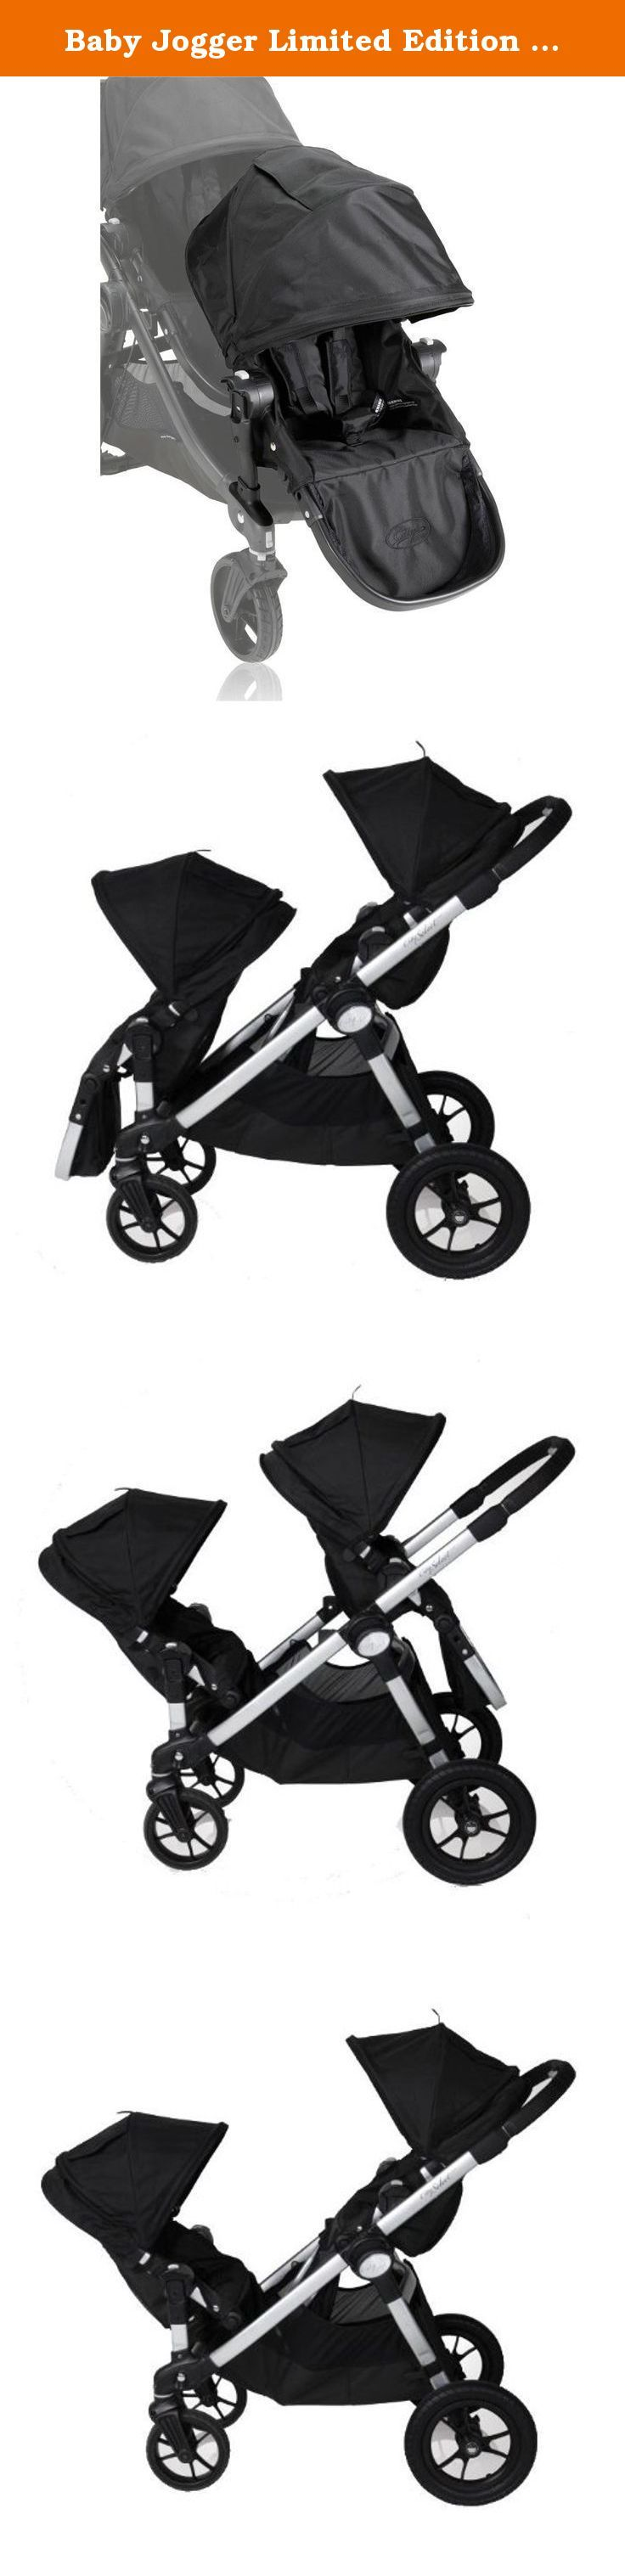 Baby Jogger Limited Edition City Select Second Seat Kit